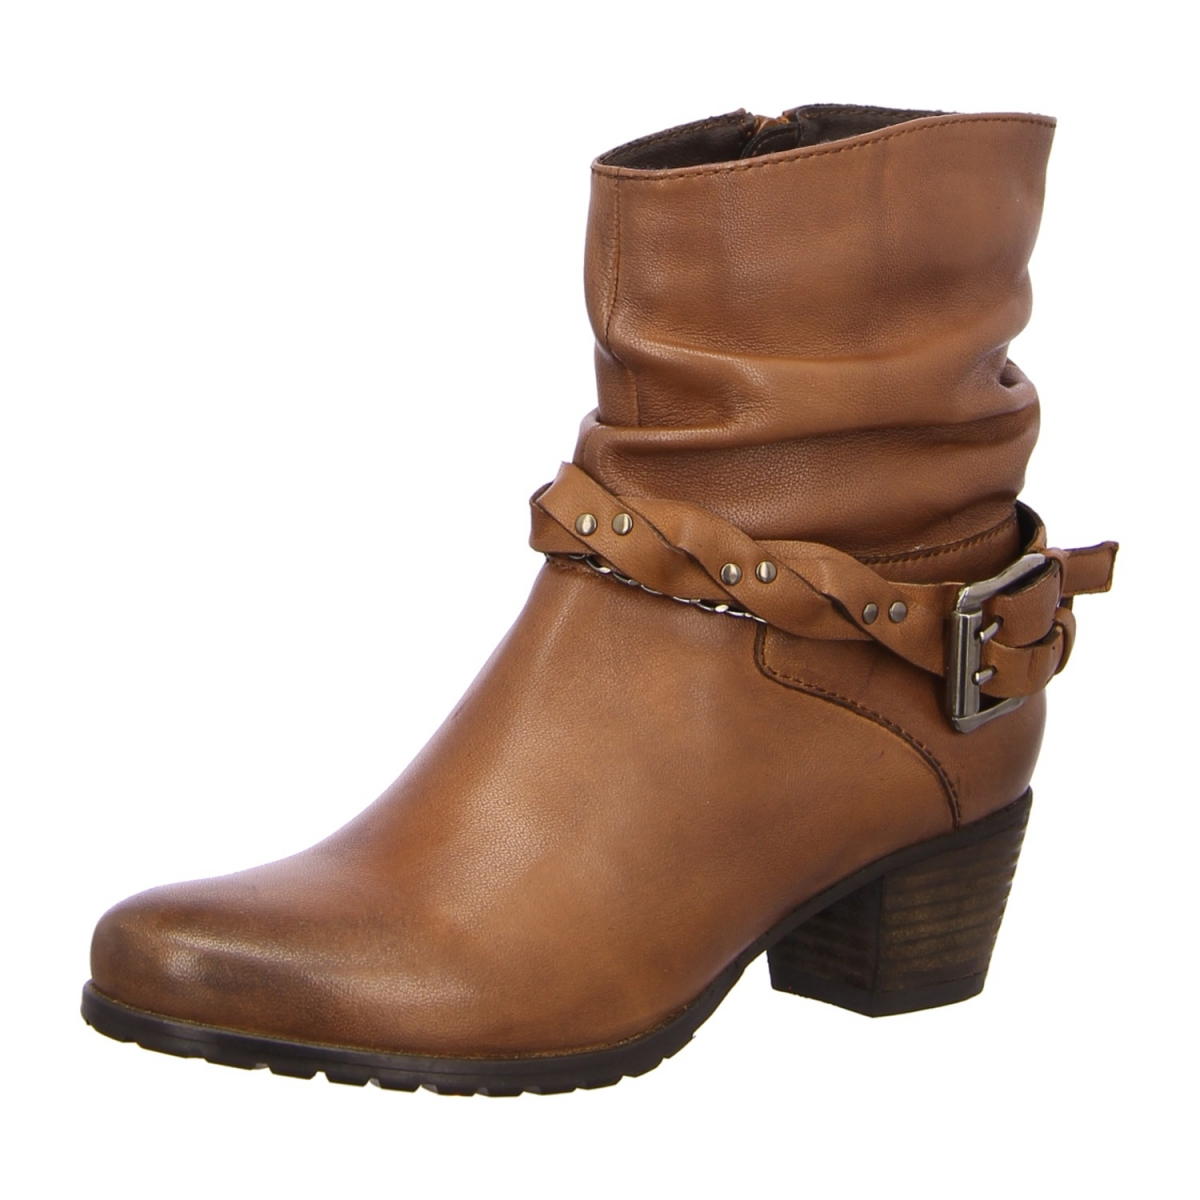 Western Boot Barn offers premium quality and brands of a broad range of cowboy boots. Sourced from USA and Europe, the Western Boot Barn brings these highly popular men's boot designs to the western boot aficionados in Australasia.